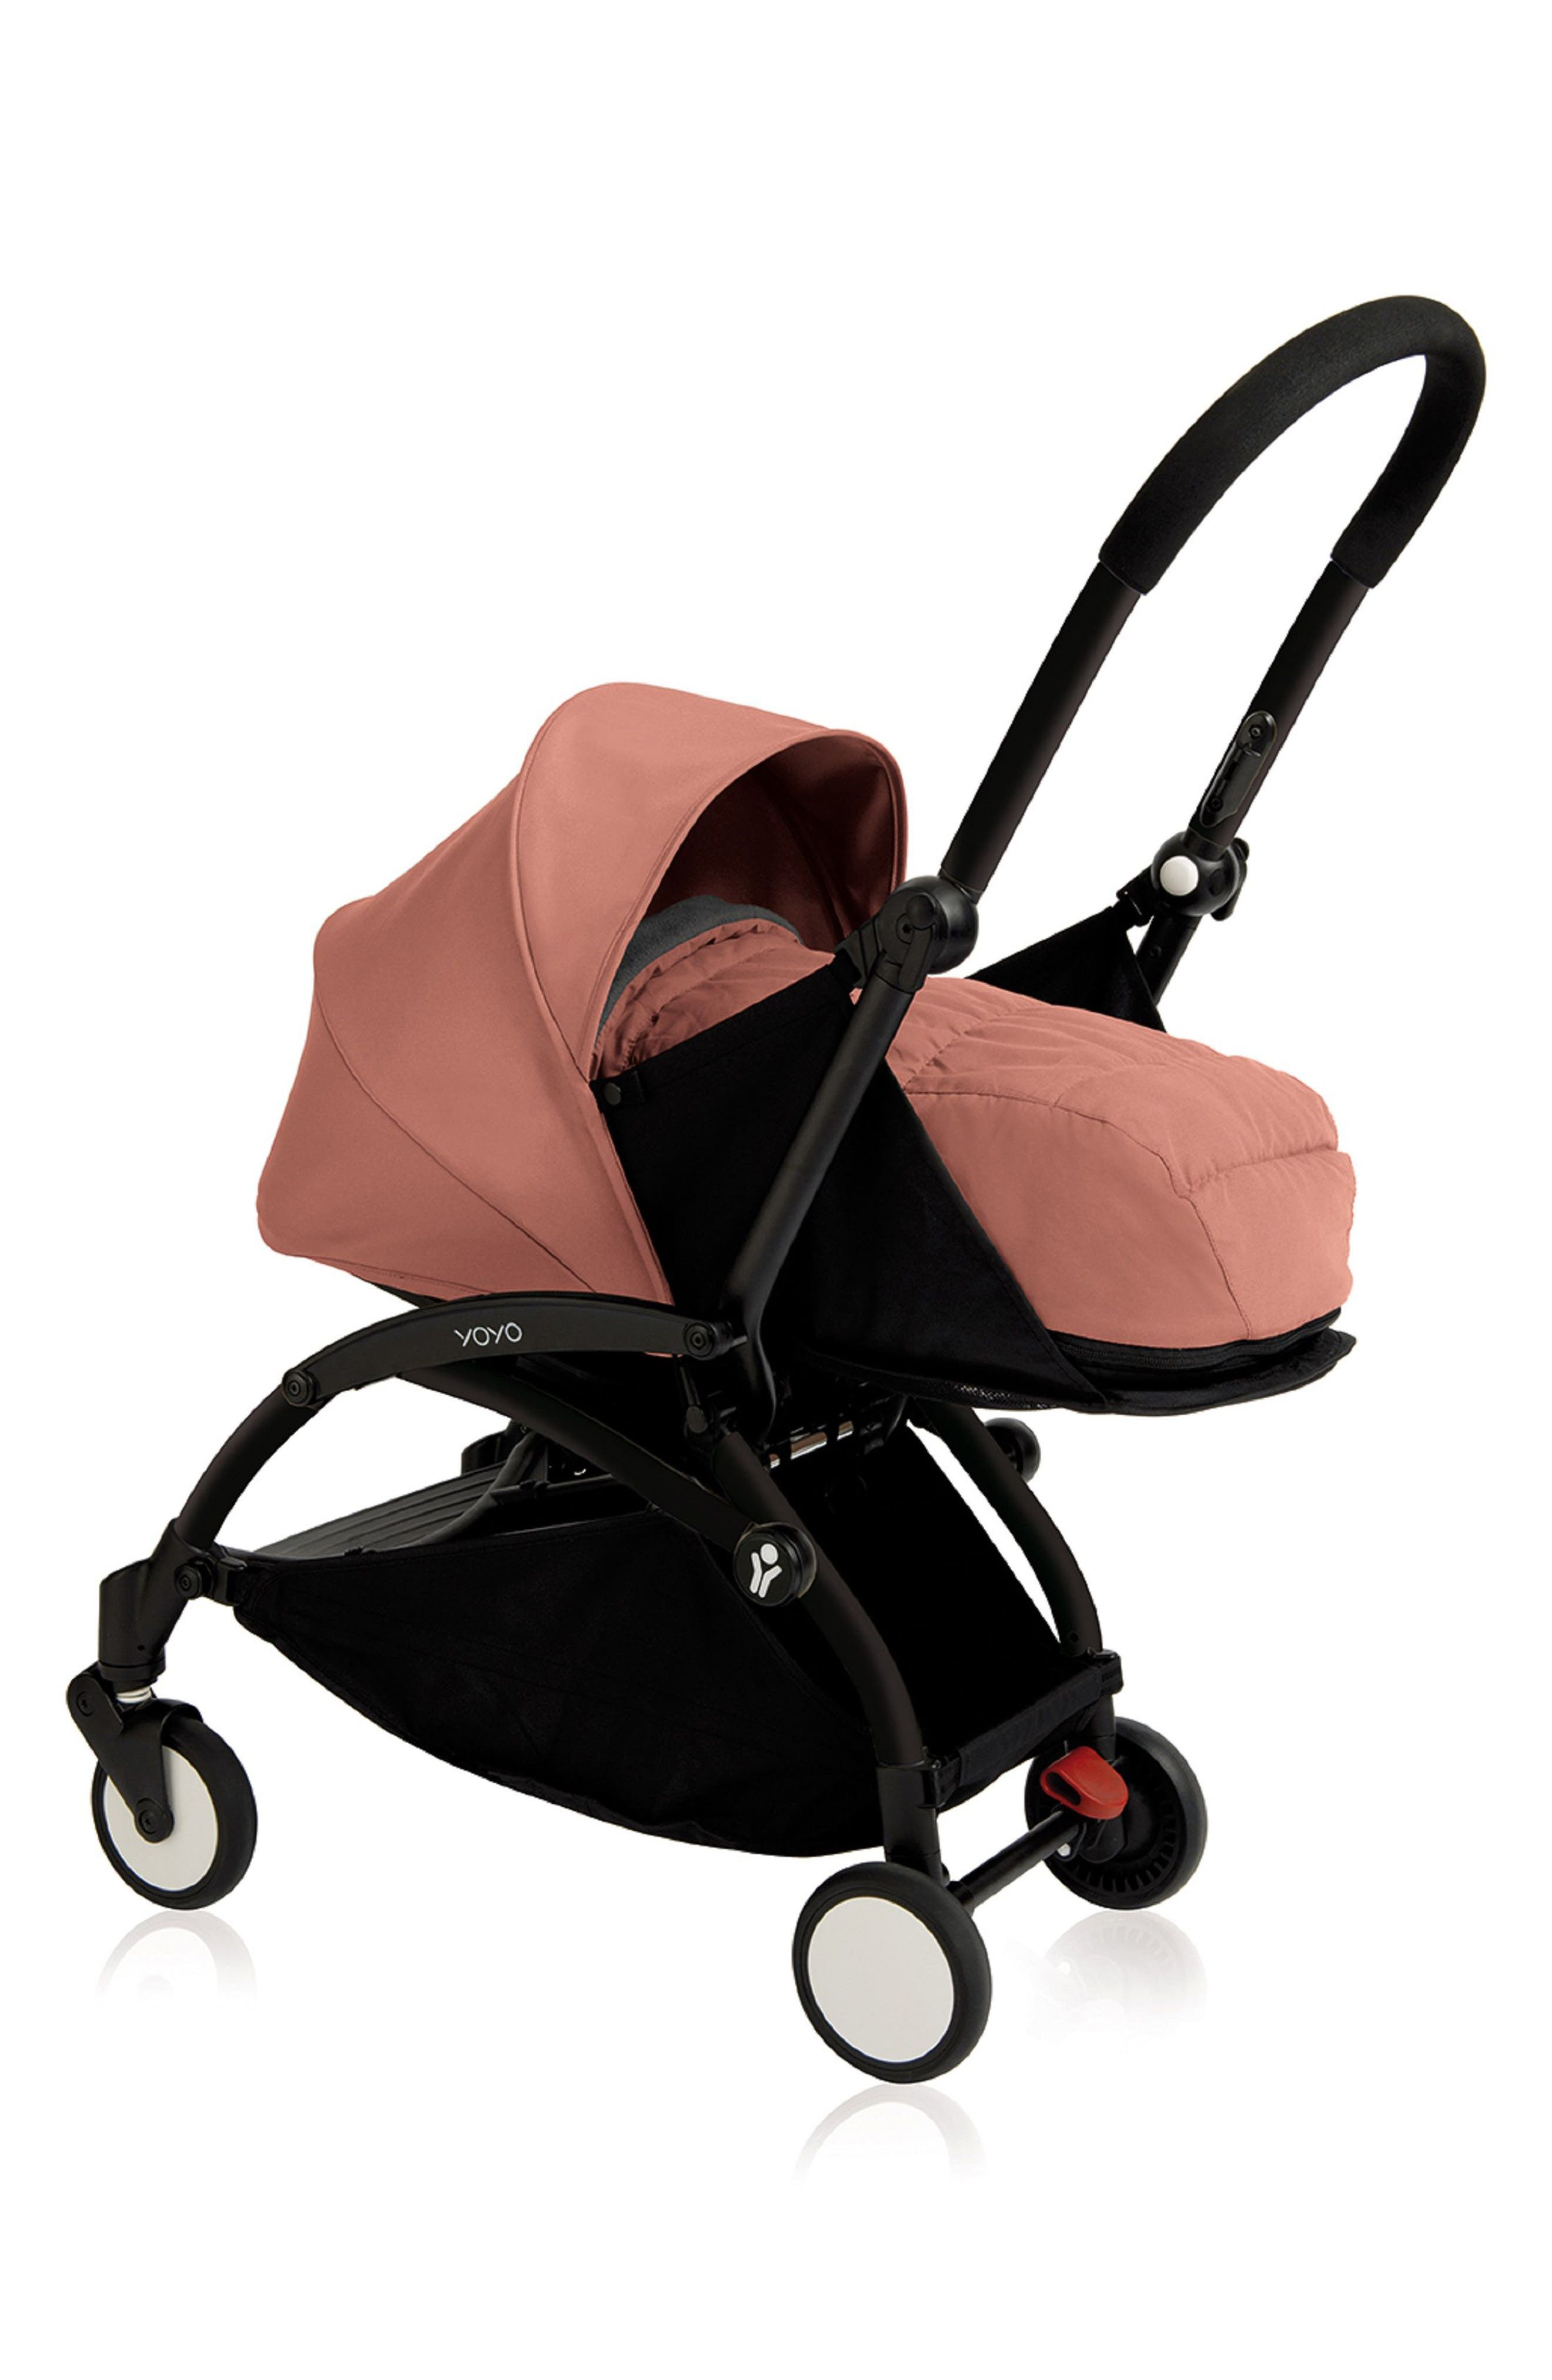 BABYZEN YOYO+ Complete Stroller with Newborn Color Pack Fabric Set,                             Main thumbnail 1, color,                             Ginger